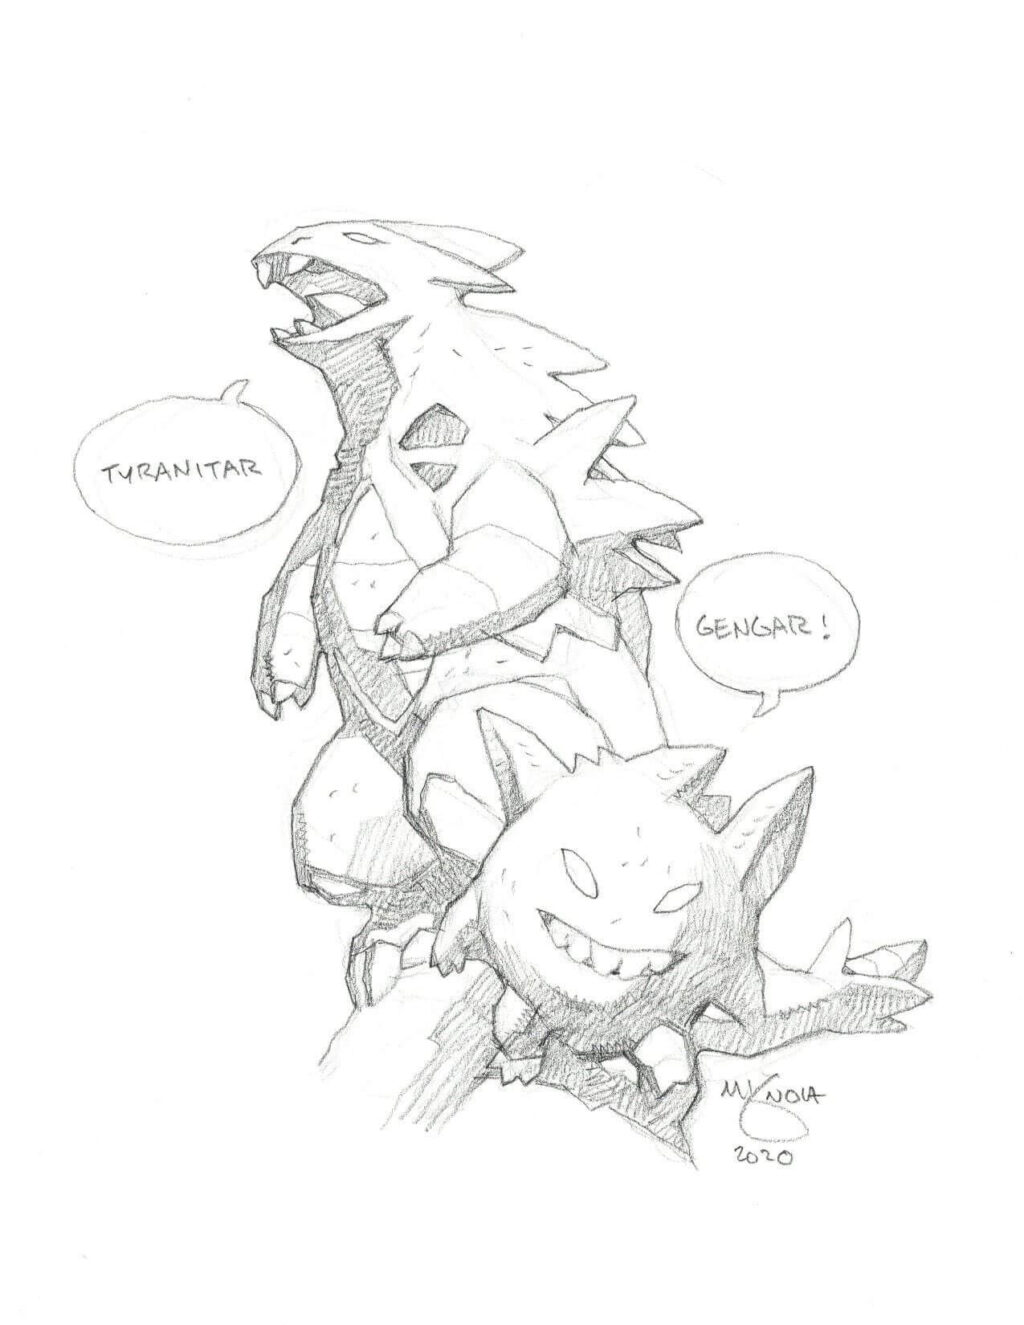 mike mignola tranitar and gengar 1 1024x1325 - Mike Mignola Shares Incredible Quarantine Artwork Of All Your Favourite Characters